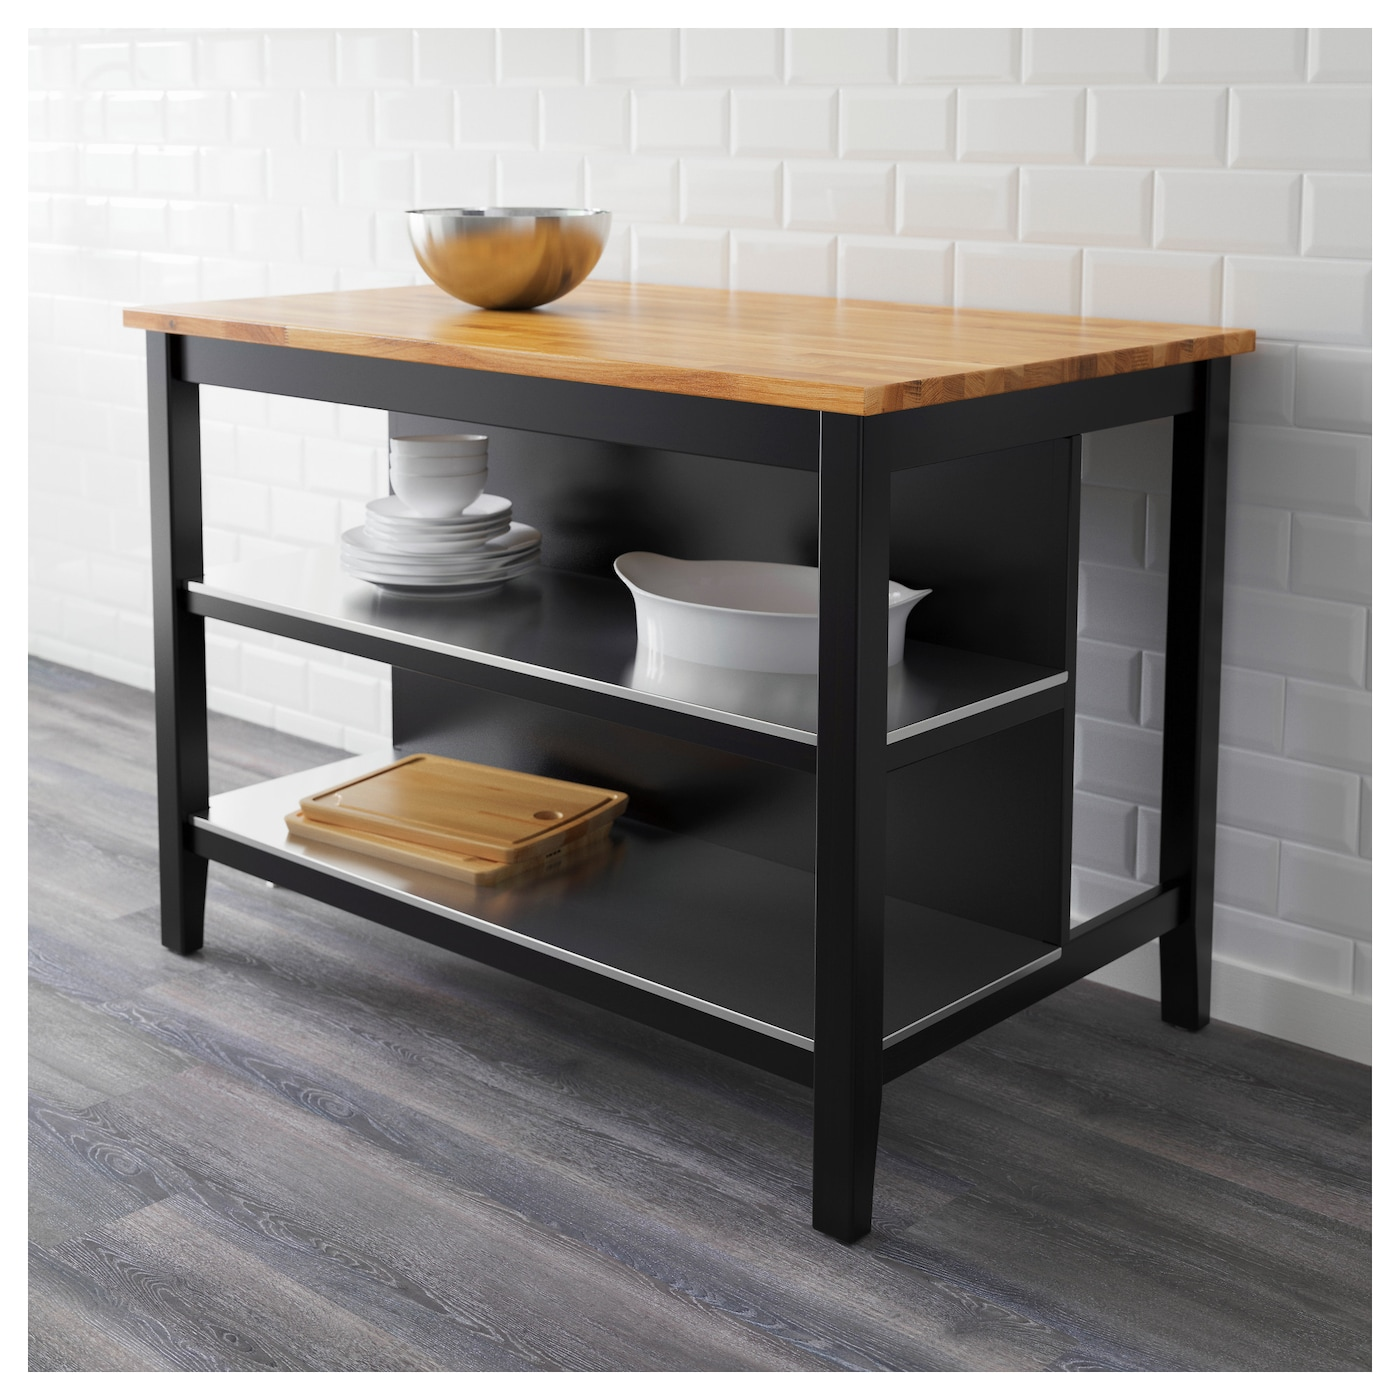 stenstorp kitchen island black brown oak 126x79 cm ikea